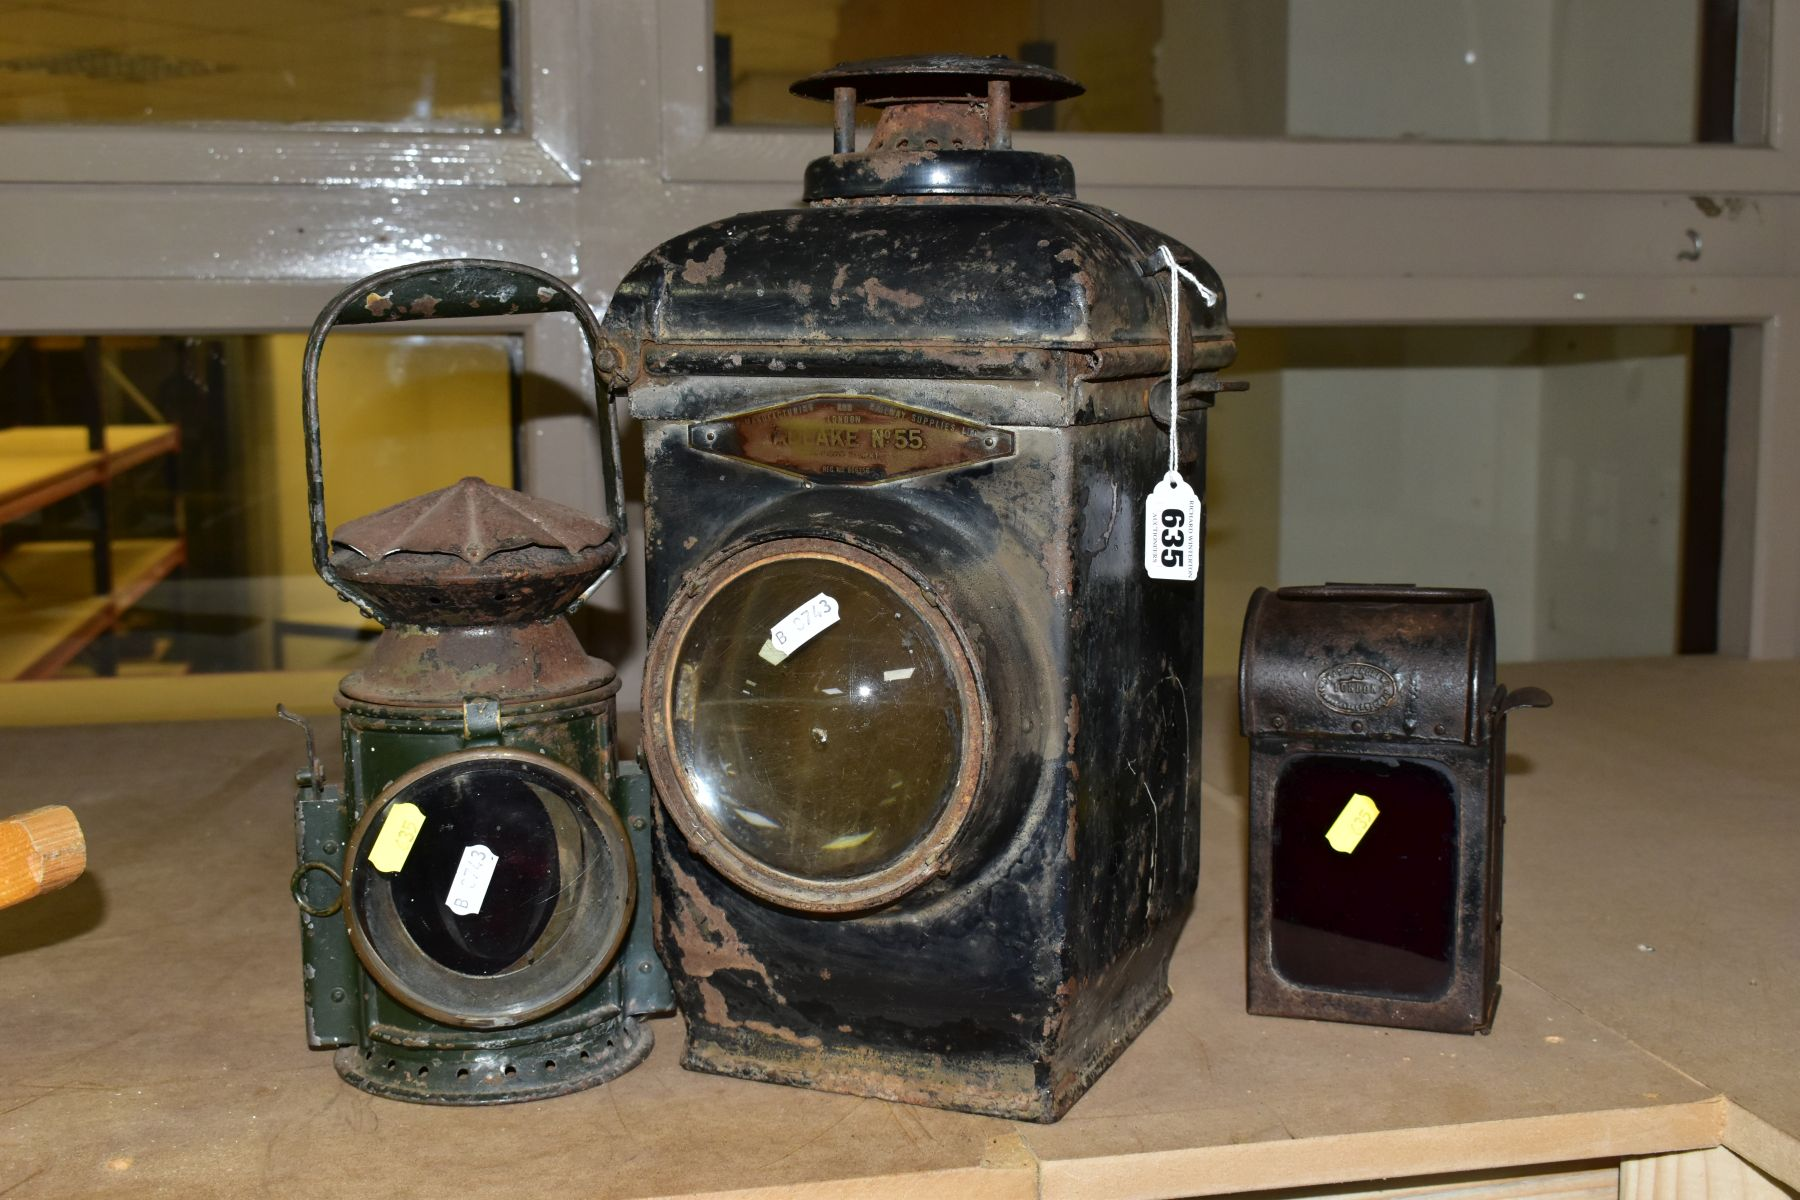 AN ADLAKE NO. 55 RAILWAY LAMP, black painted body with clear bulls eye lens, complete with lift